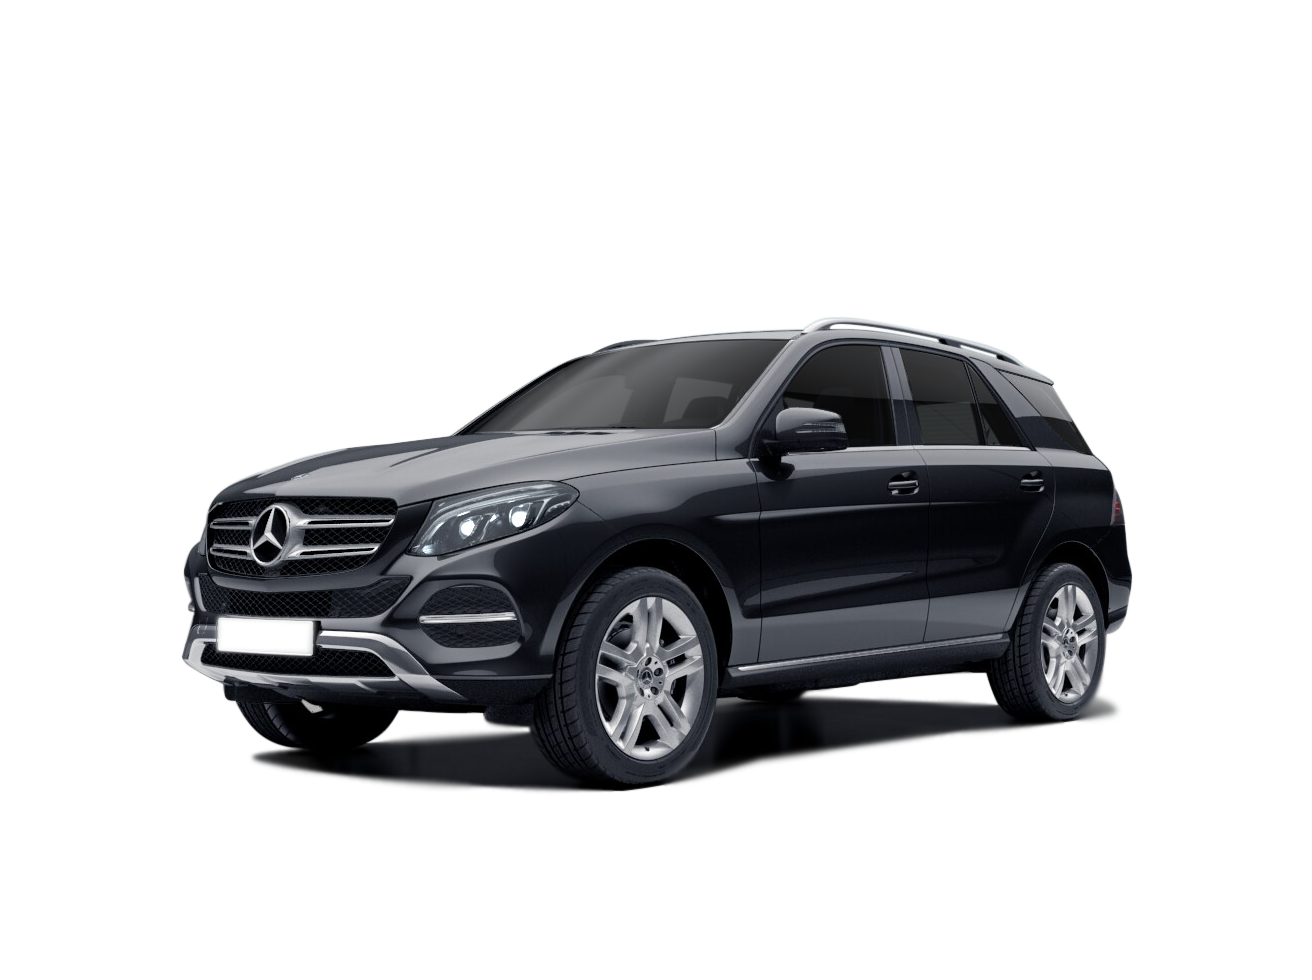 MERCEDES-BENZ - GLE 350 - 3.0 V6 BLUETEC DIESEL HIGHWAY 4MATIC 9G-TRONIC